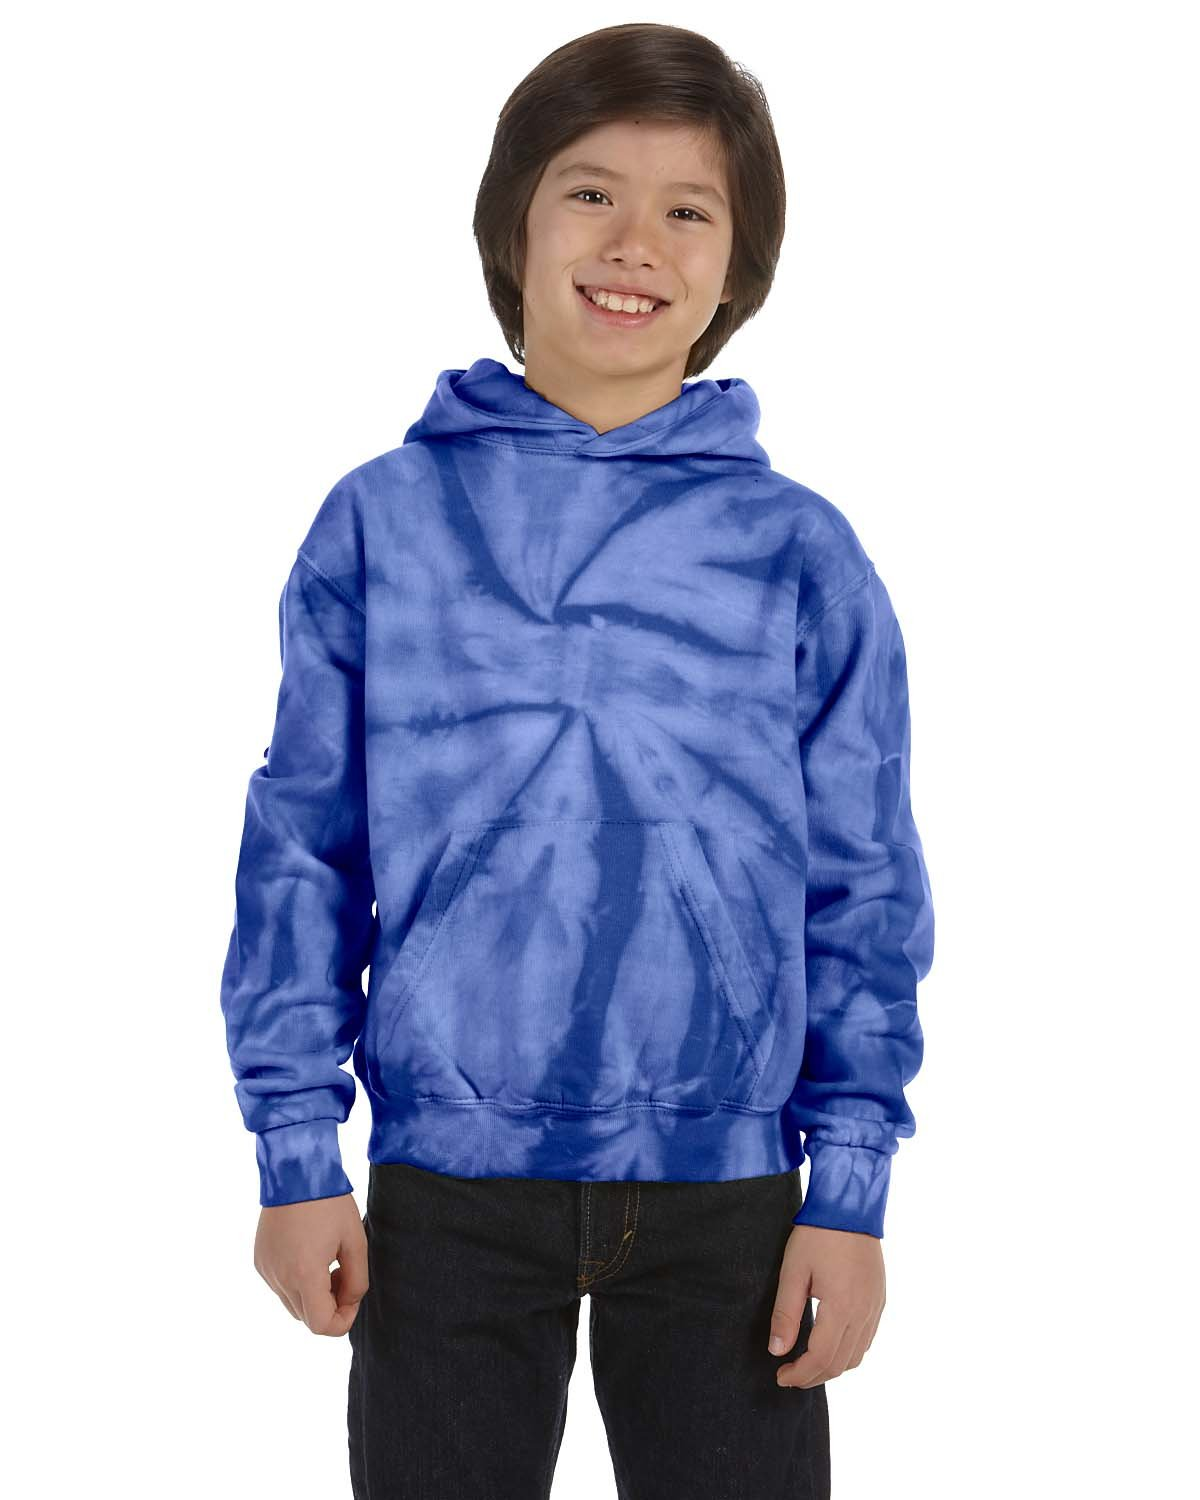 Tie-Dye Youth 8.5 oz. Tie-Dyed Pullover Hooded Sweatshirt SPIDER ROYAL